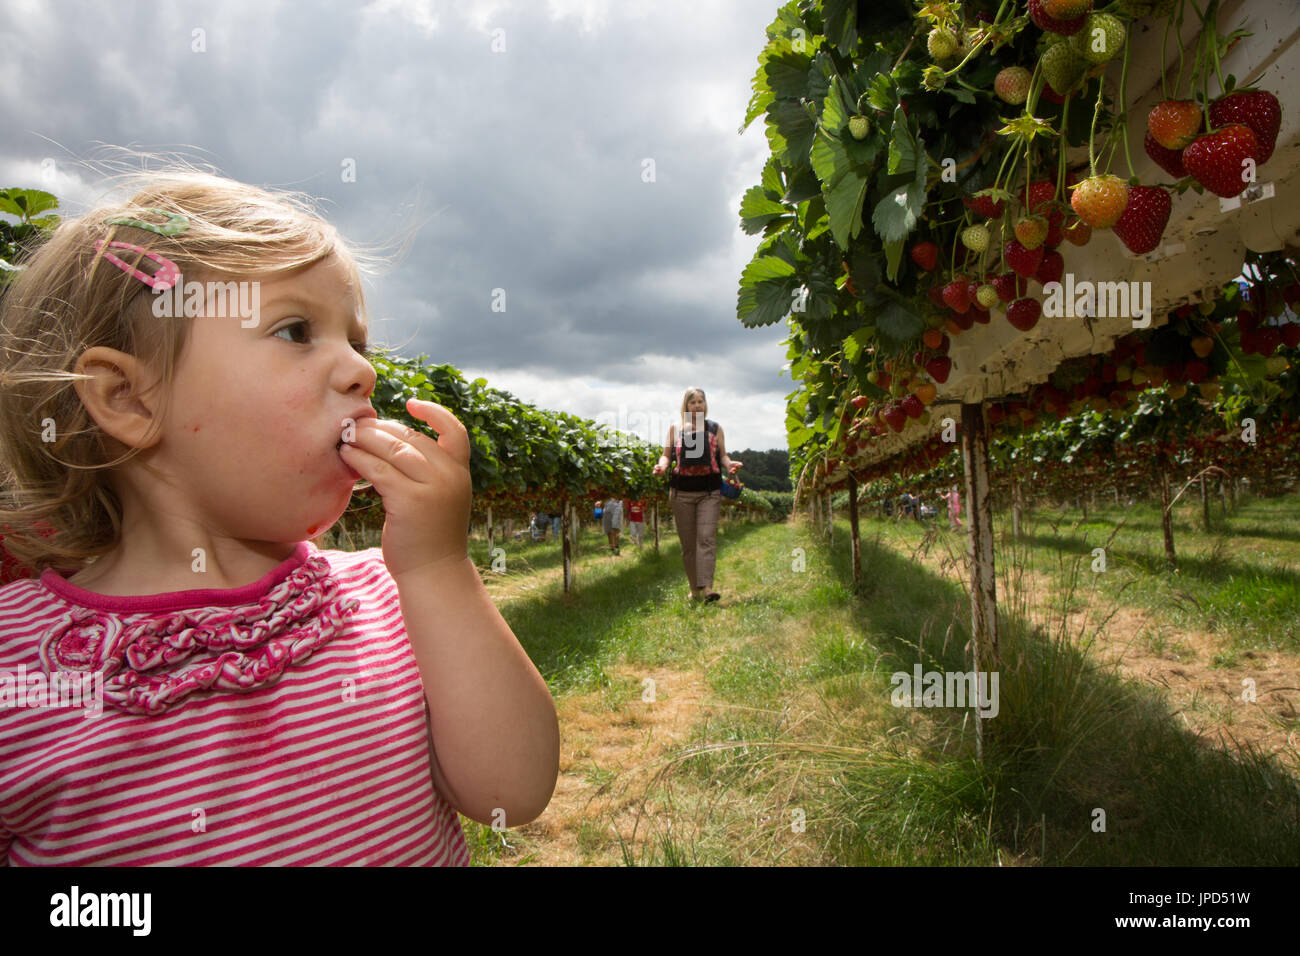 A toddler girl of 18 months eating strawberries at a pick-your-own-farm in England. Her mother and baby sister are in the background - Stock Image